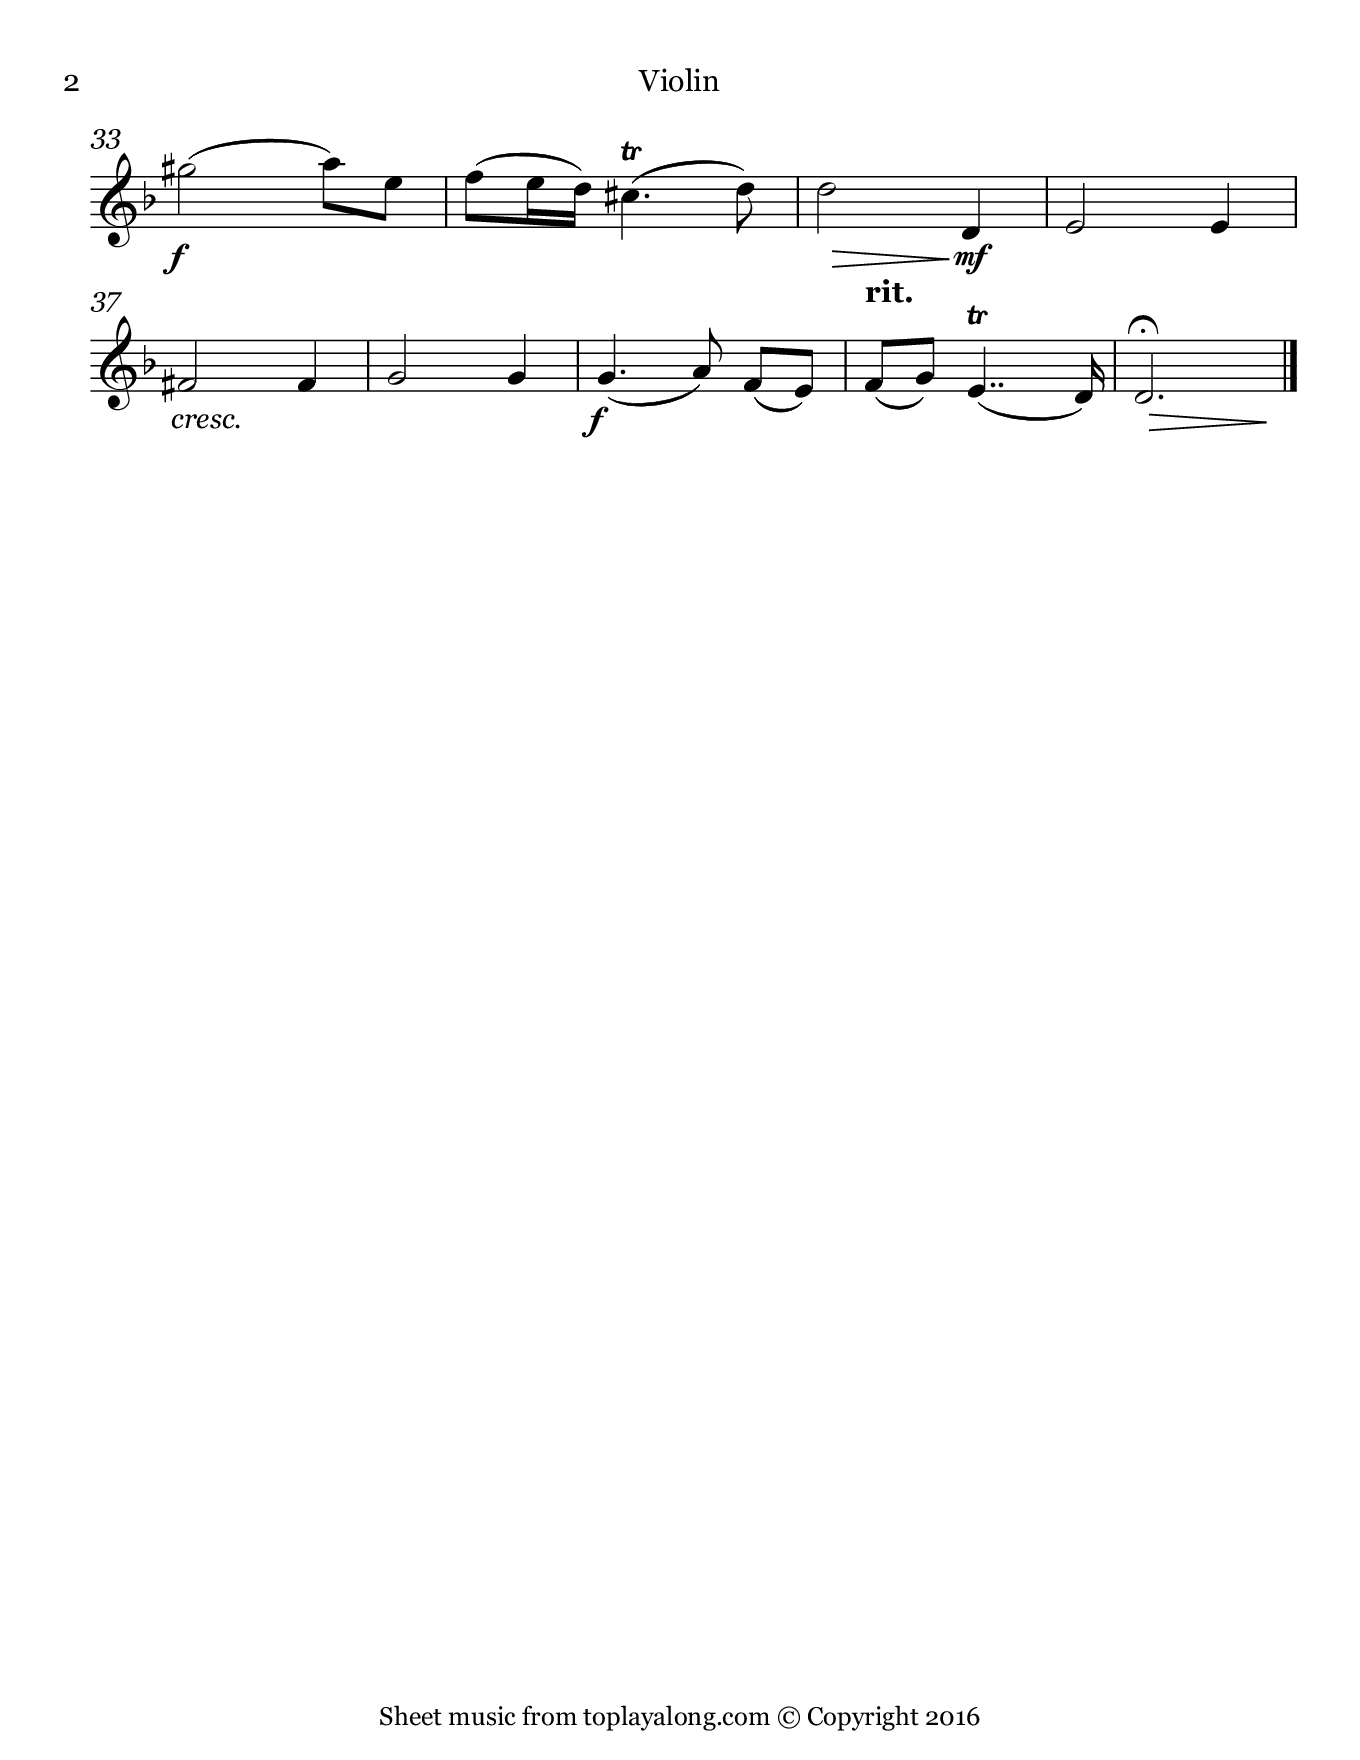 Oboe Concerto in D minor (II. Adagio) by Marcello. Sheet music for Violin, page 2.